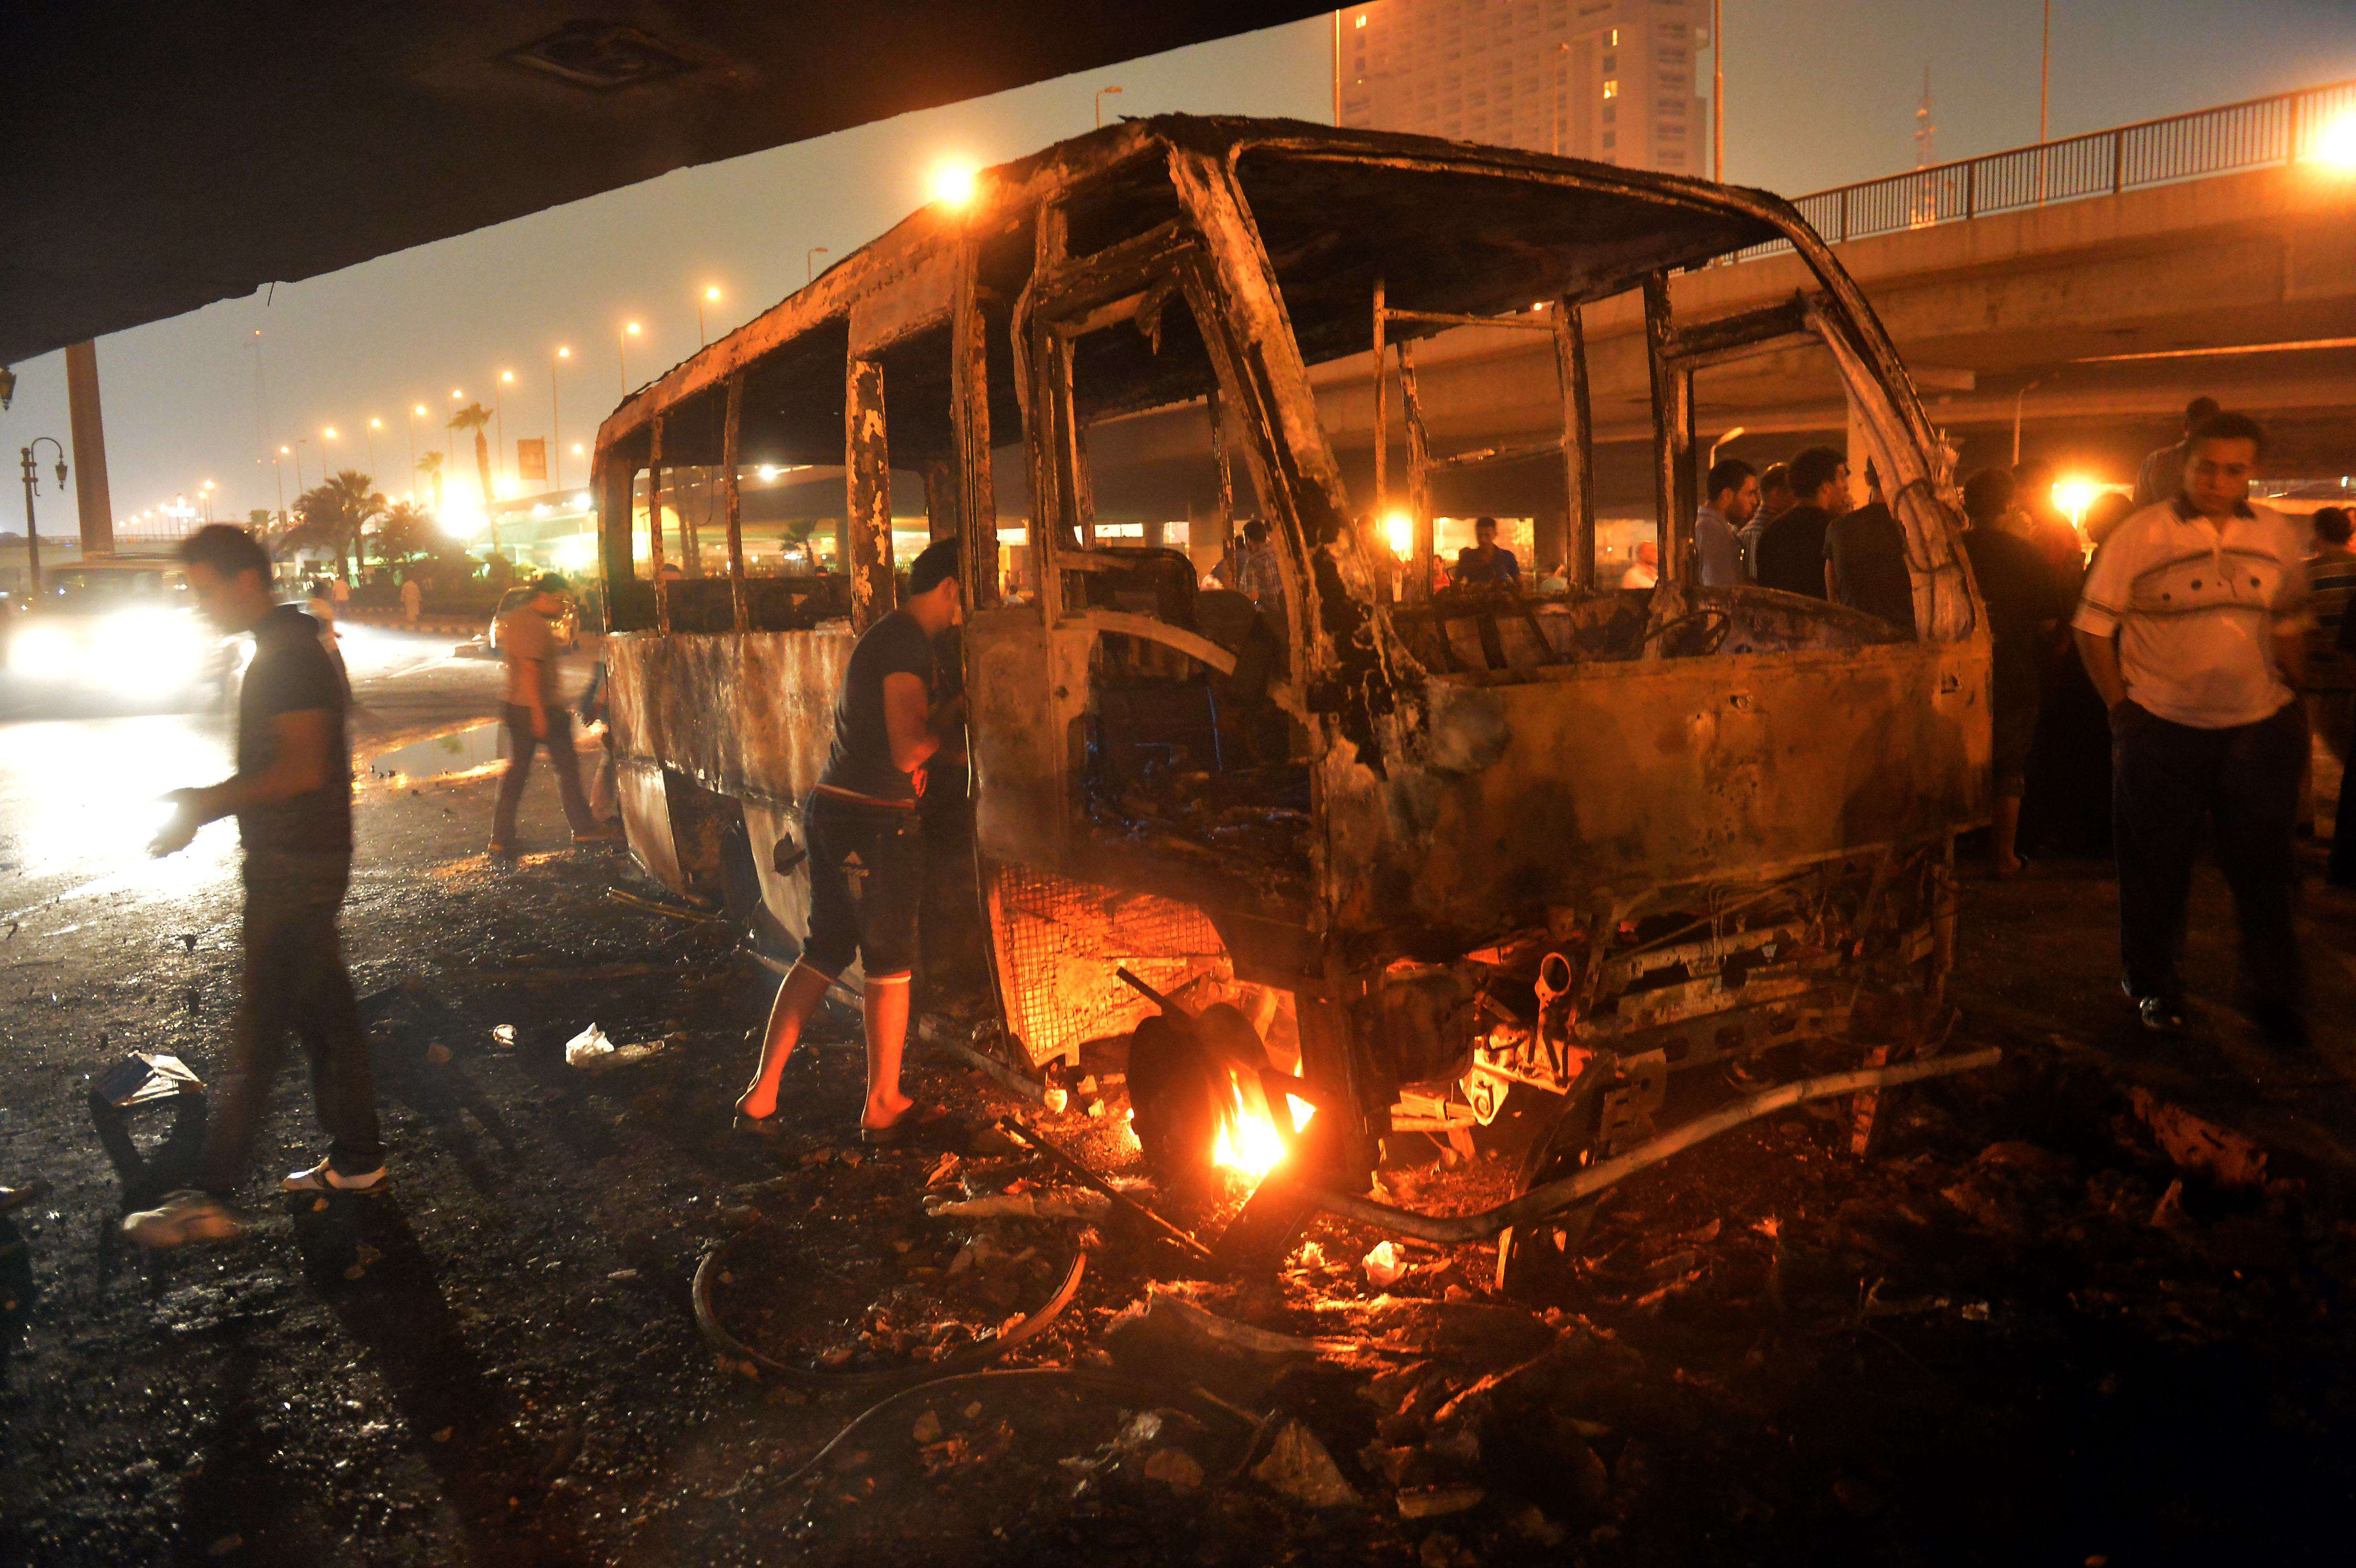 Egyptians inspect a burnt bus which was set on fire during clashes between government supporters and opponents of the Muslim Brotherhood and President Mohamed Morsi in Tahrir square in Cairo. (AFP/ KHALED DESOUKI)